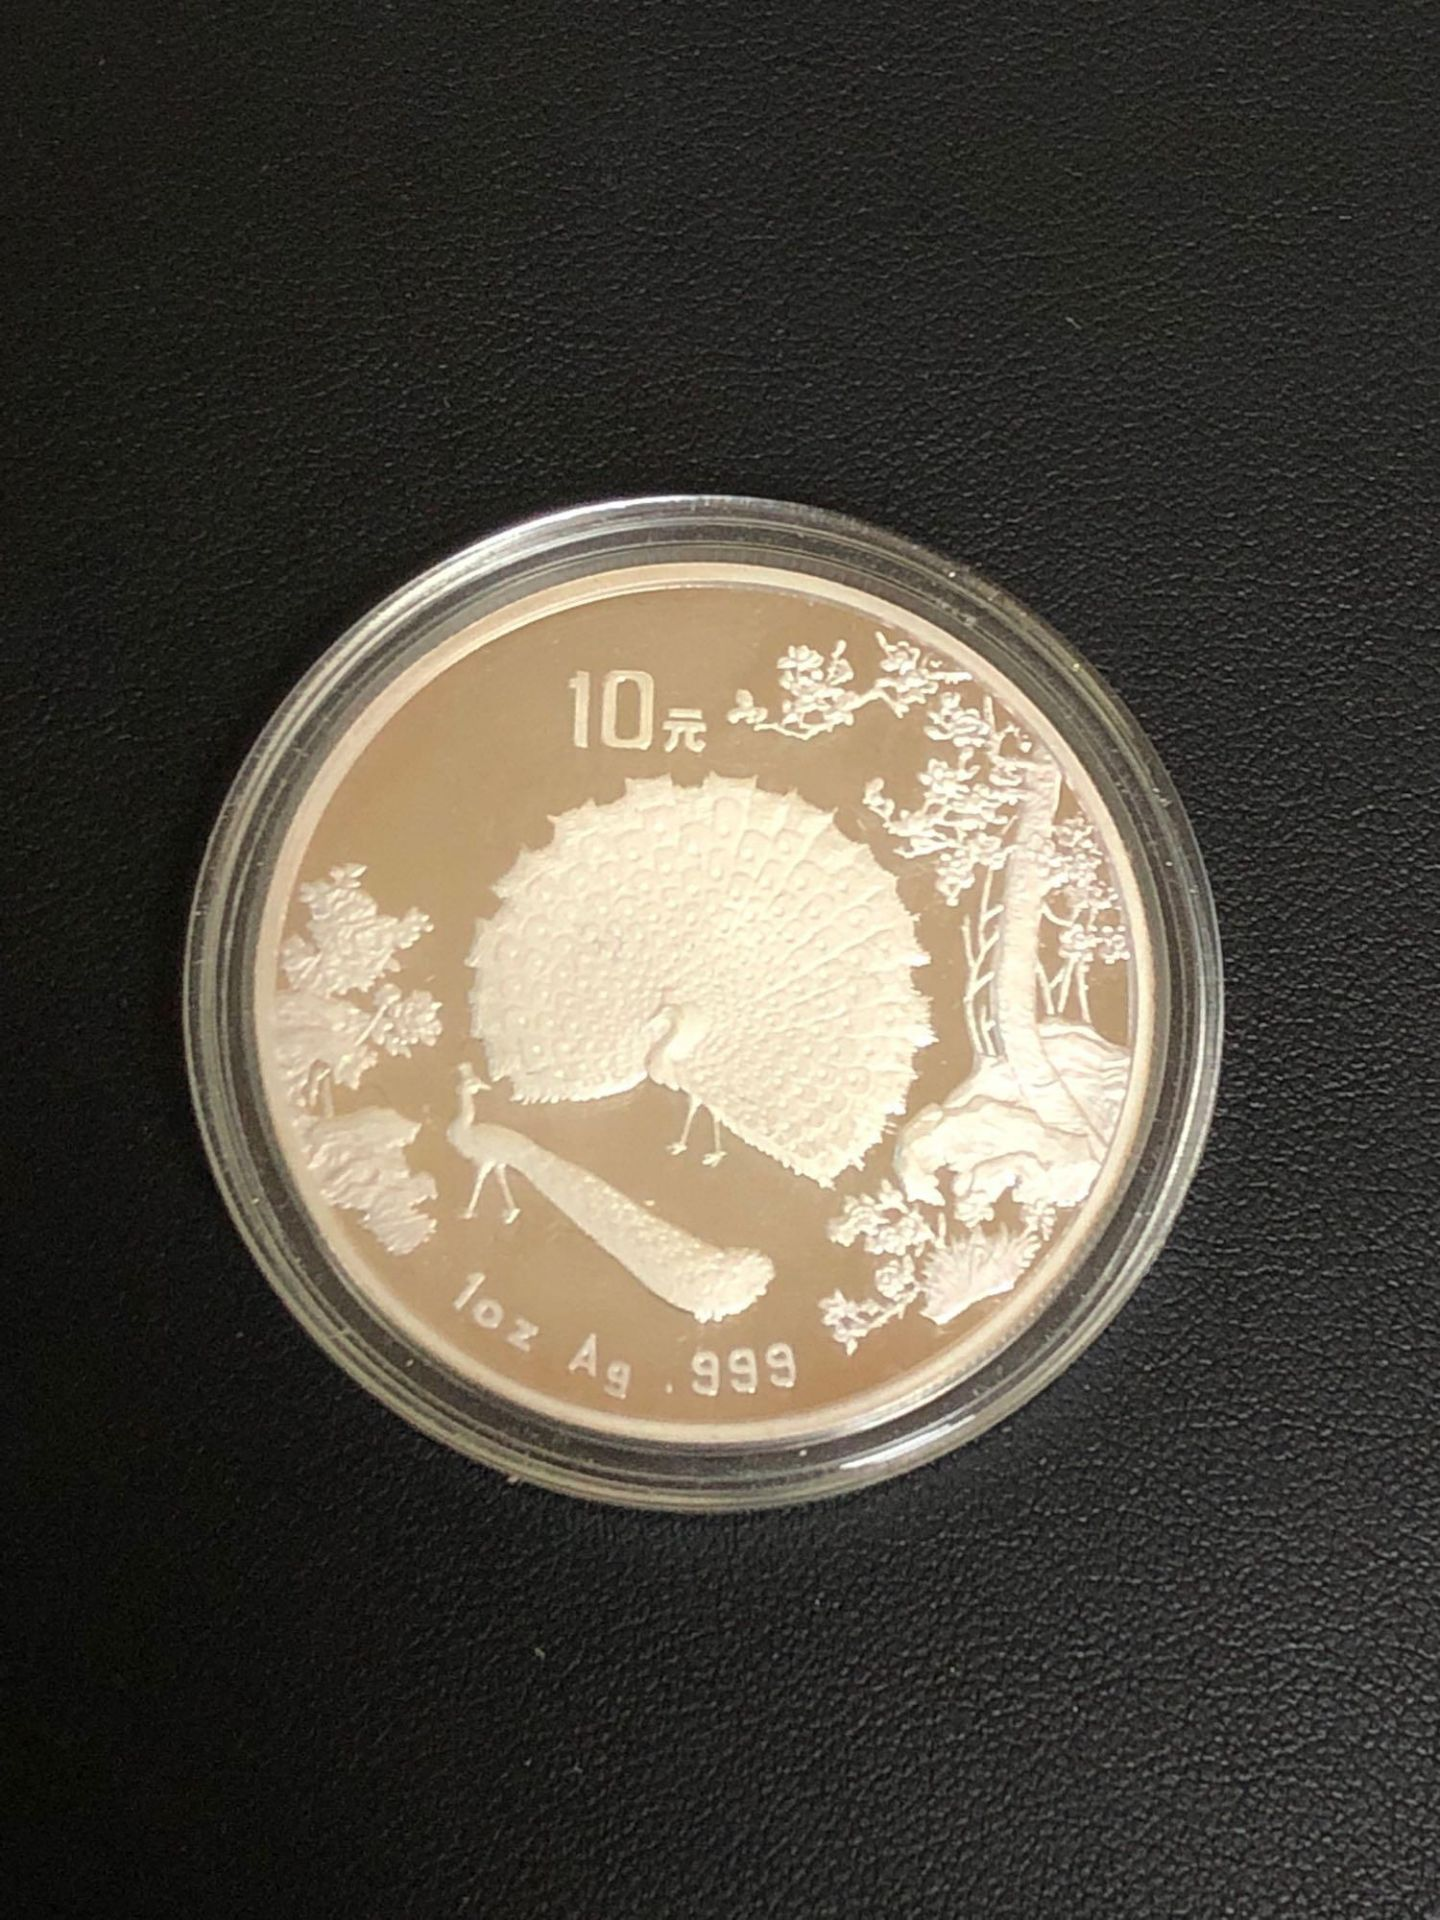 1993 1 OZT .999 FINE SILVER CHINESE COIN - Image 2 of 3